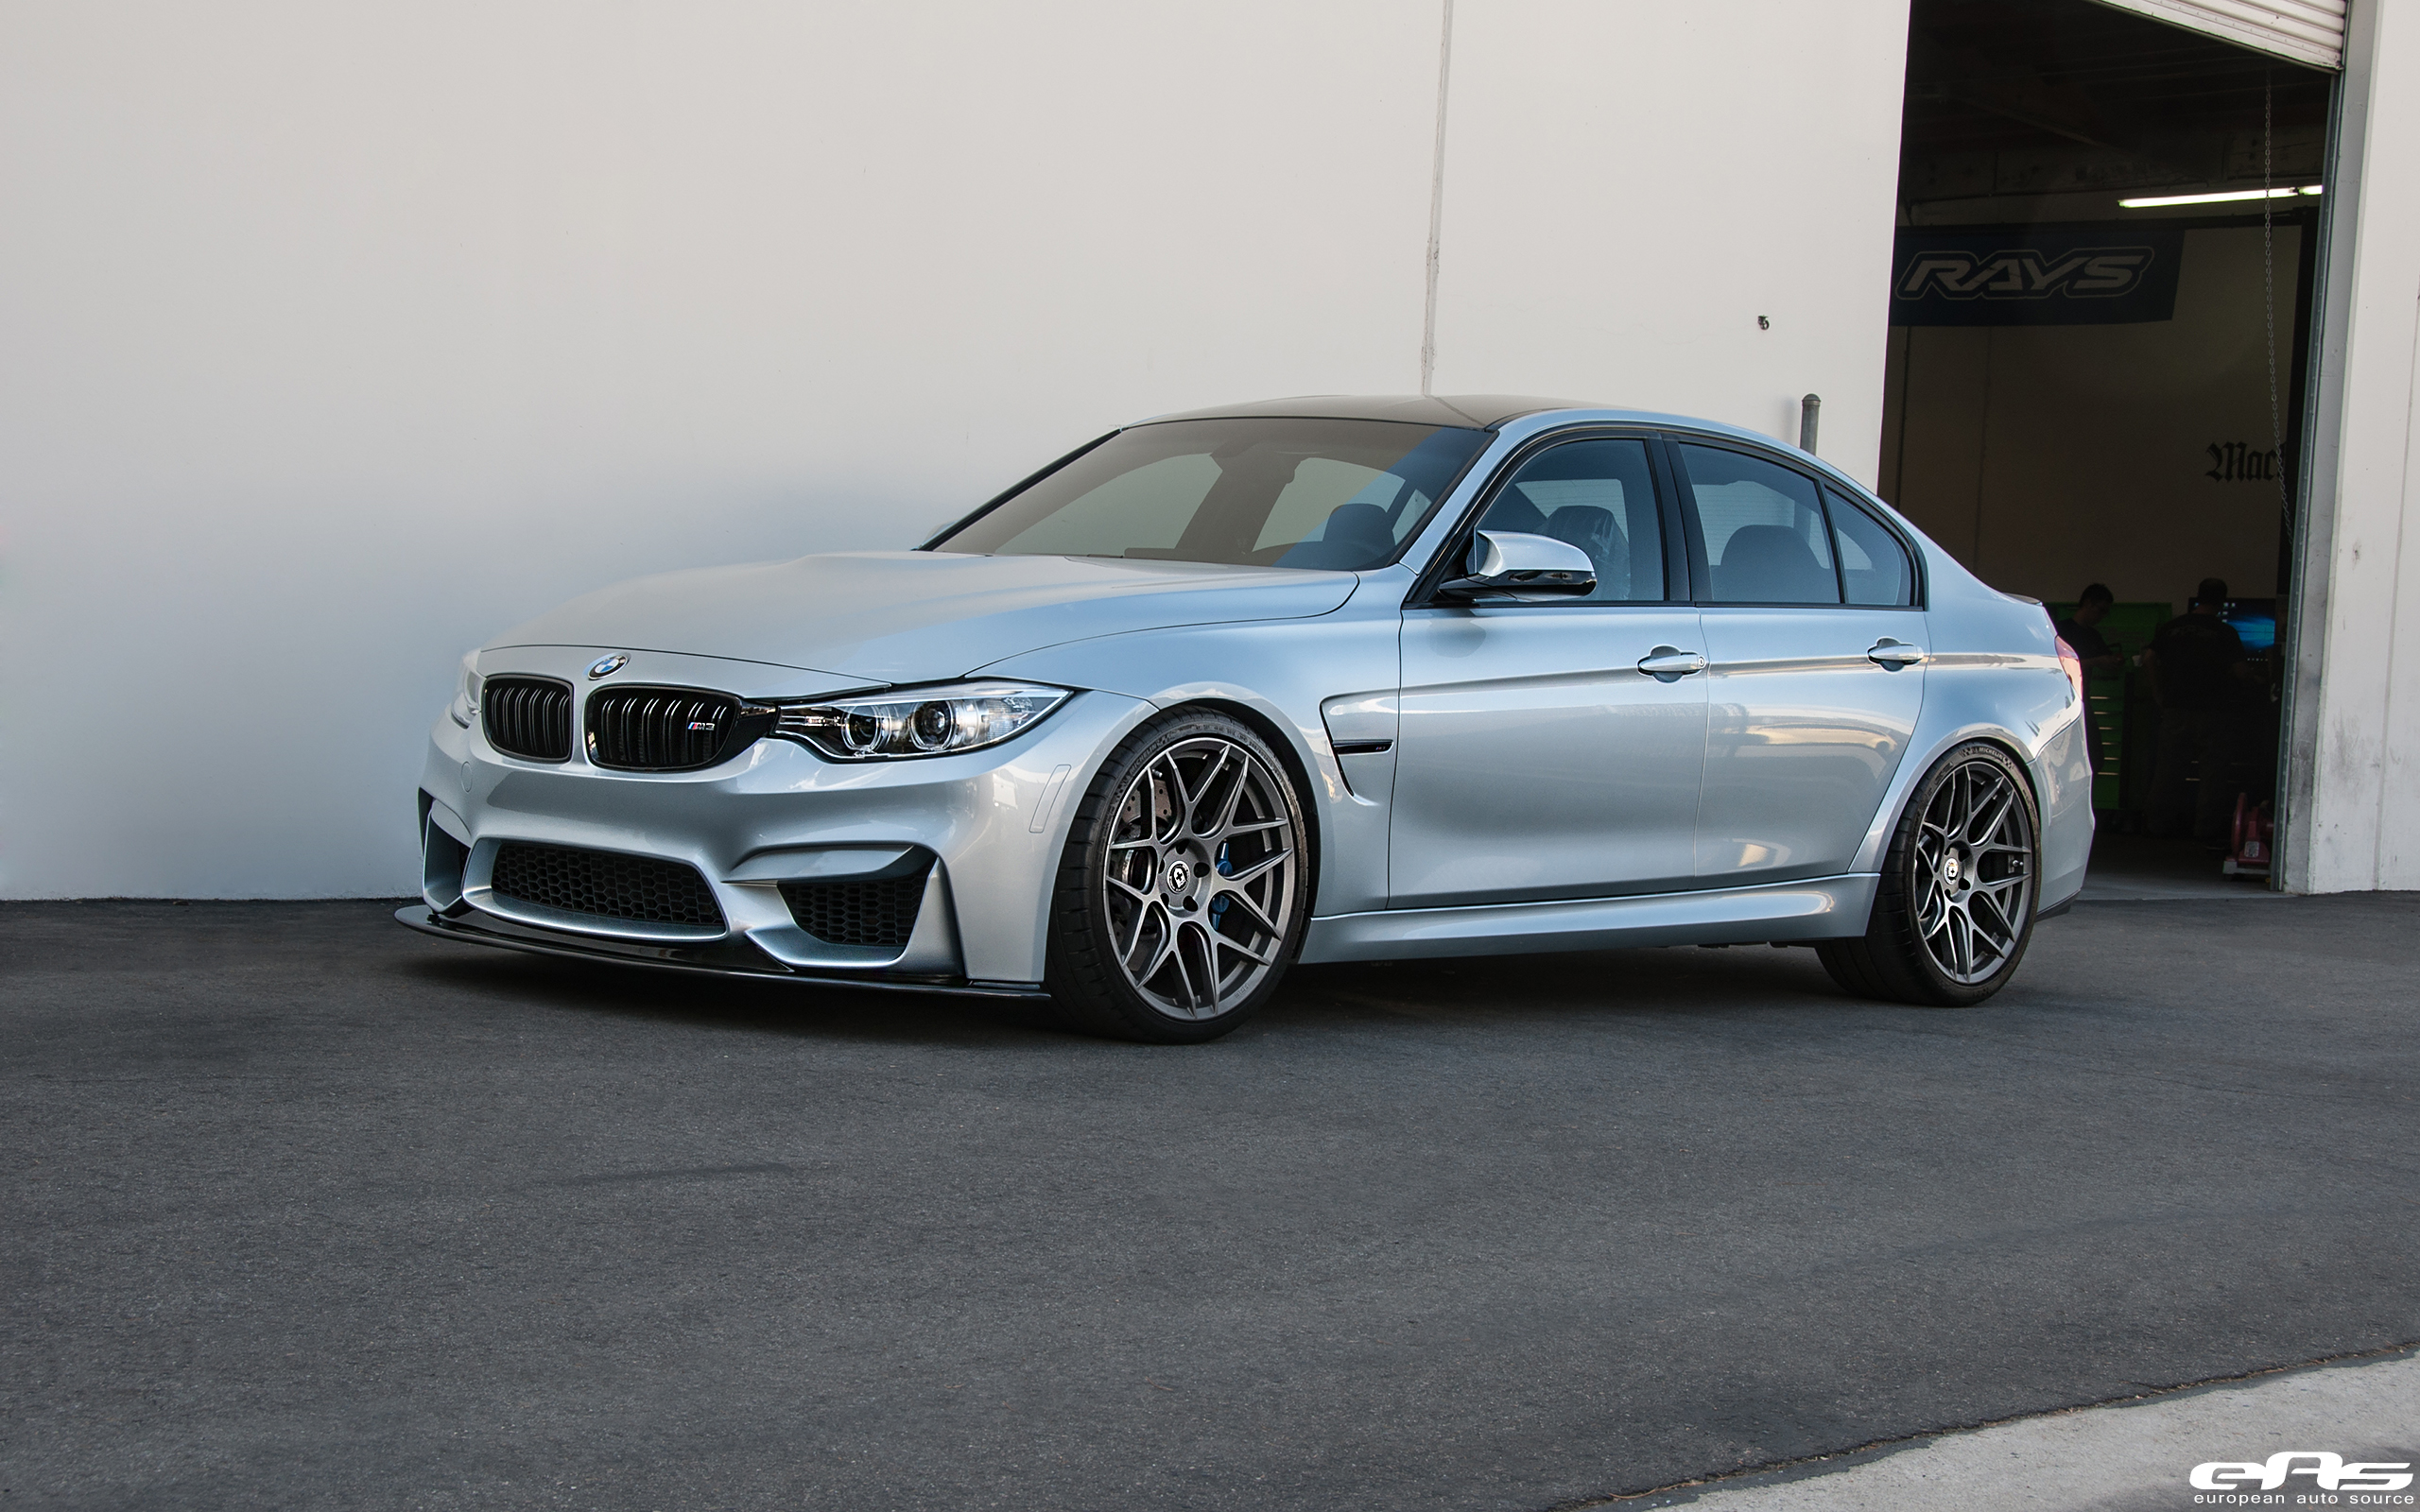 Elsa - The 2015 Silverstone Metallic F80 M3 | BMW ...